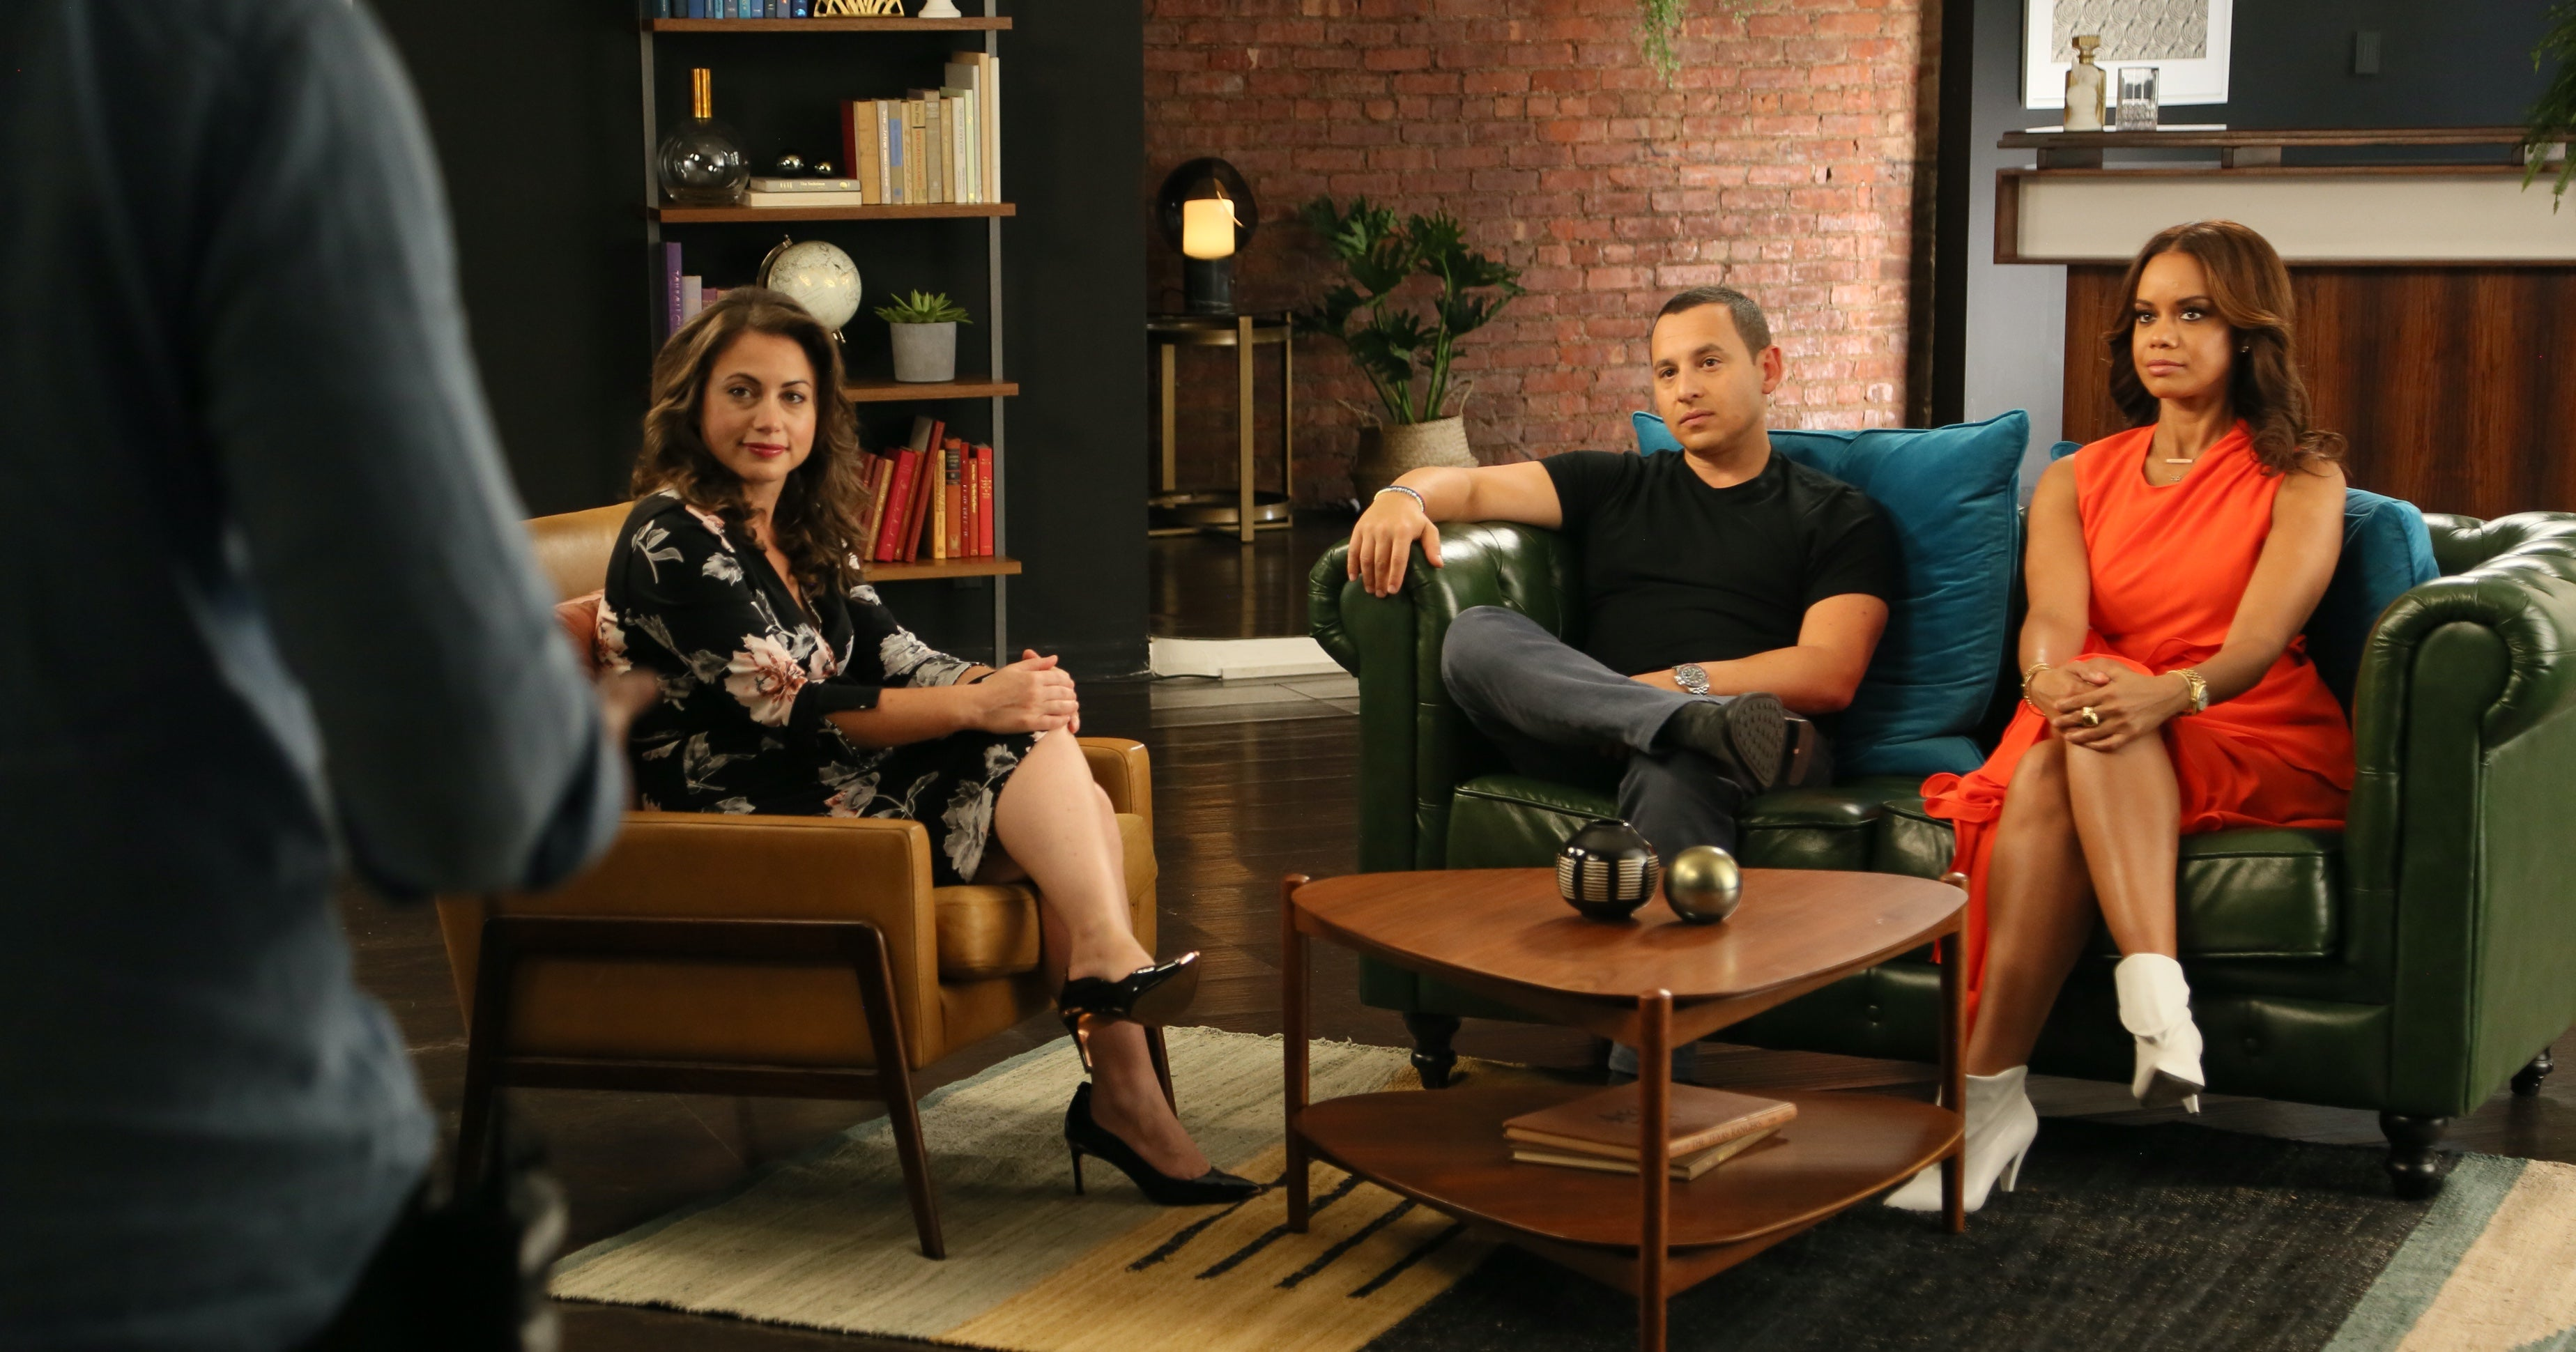 Three mentors sit on sofas listening to a pitch by an off-camera entrepreneur in the series I Quit